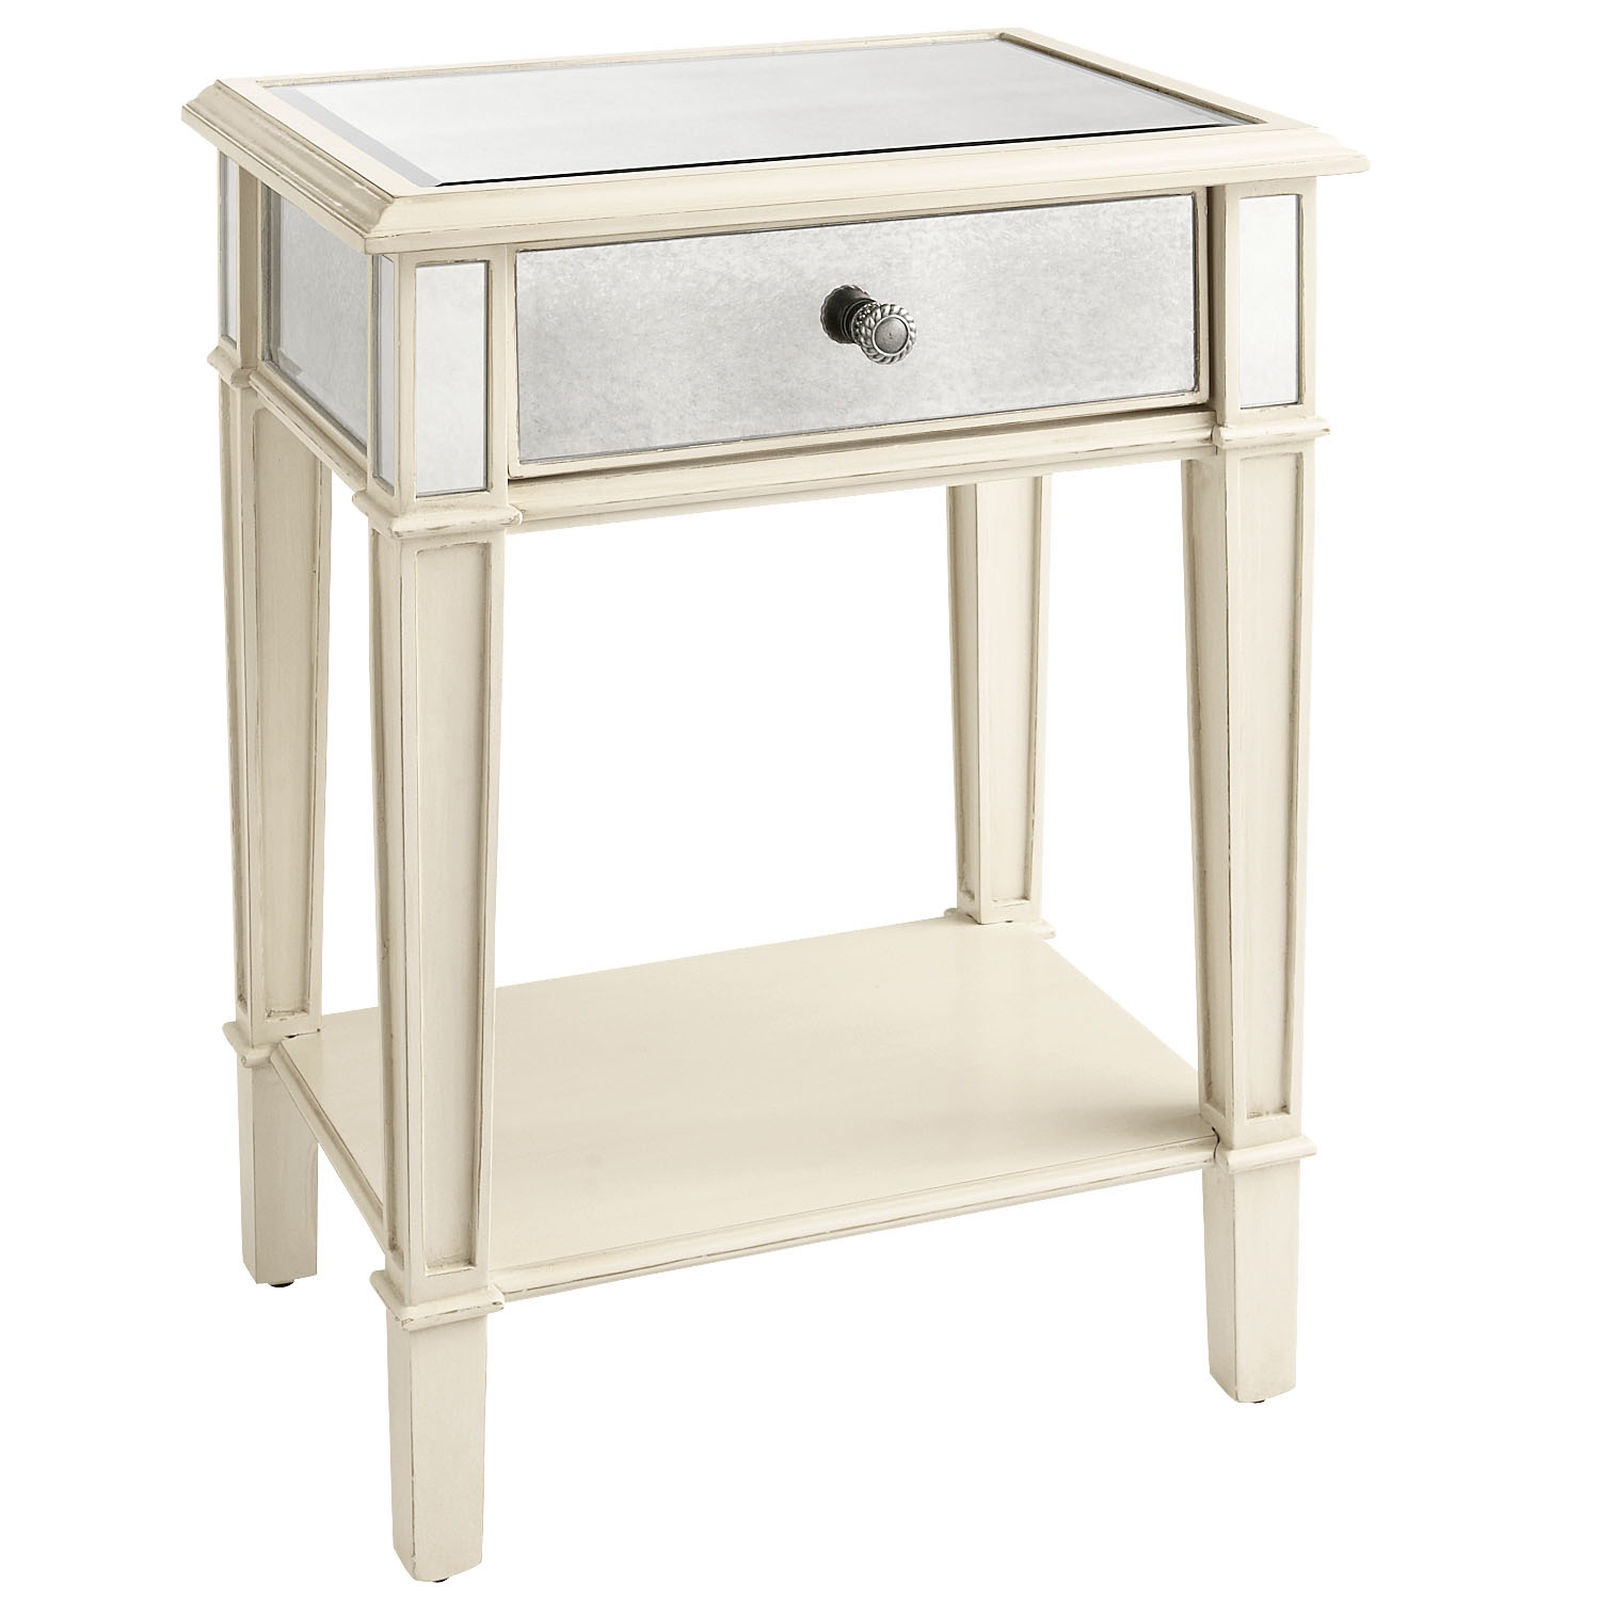 furniture artful design night stands pamperedpetsct nightstands for tall beds bedside tables black dresser sears headboards dressers home goods mirrored nightstand small accent